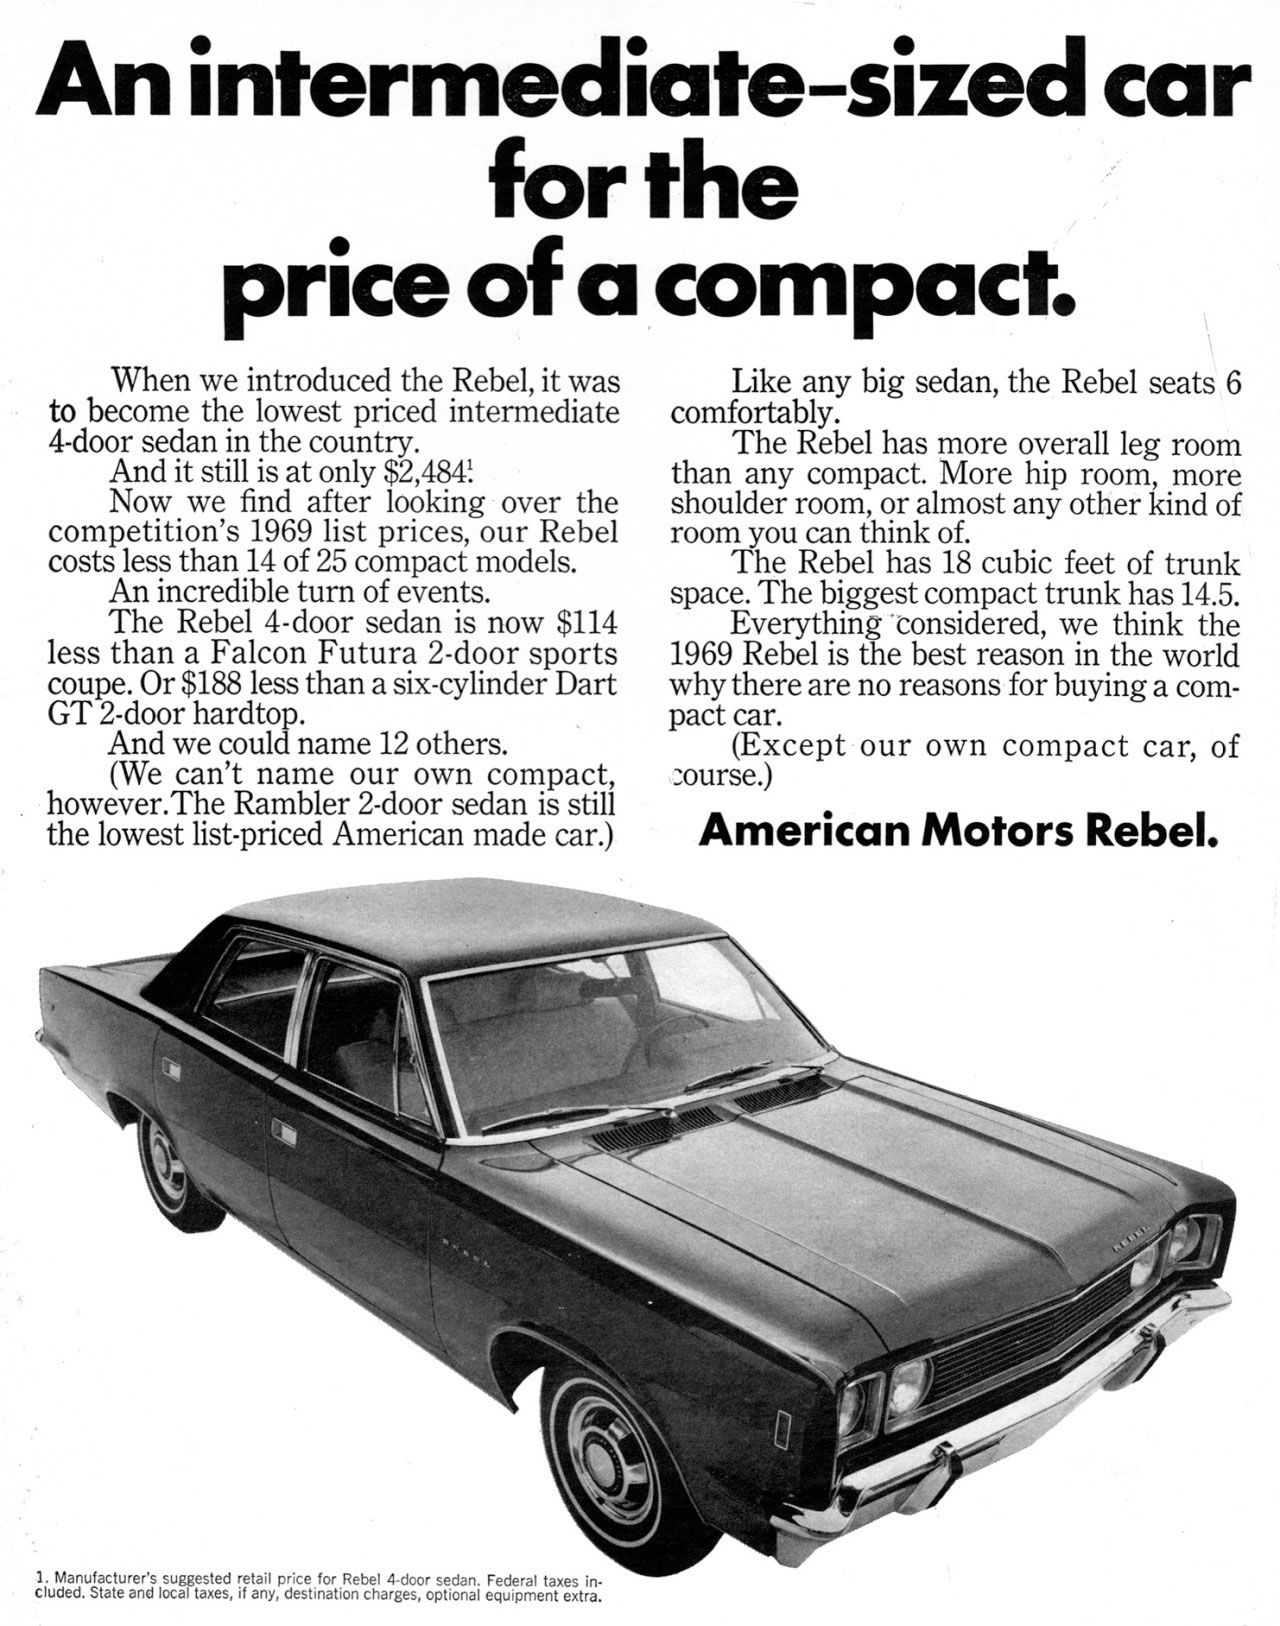 American Motors Rebel. An intermediate-sized car for the price of a compact.